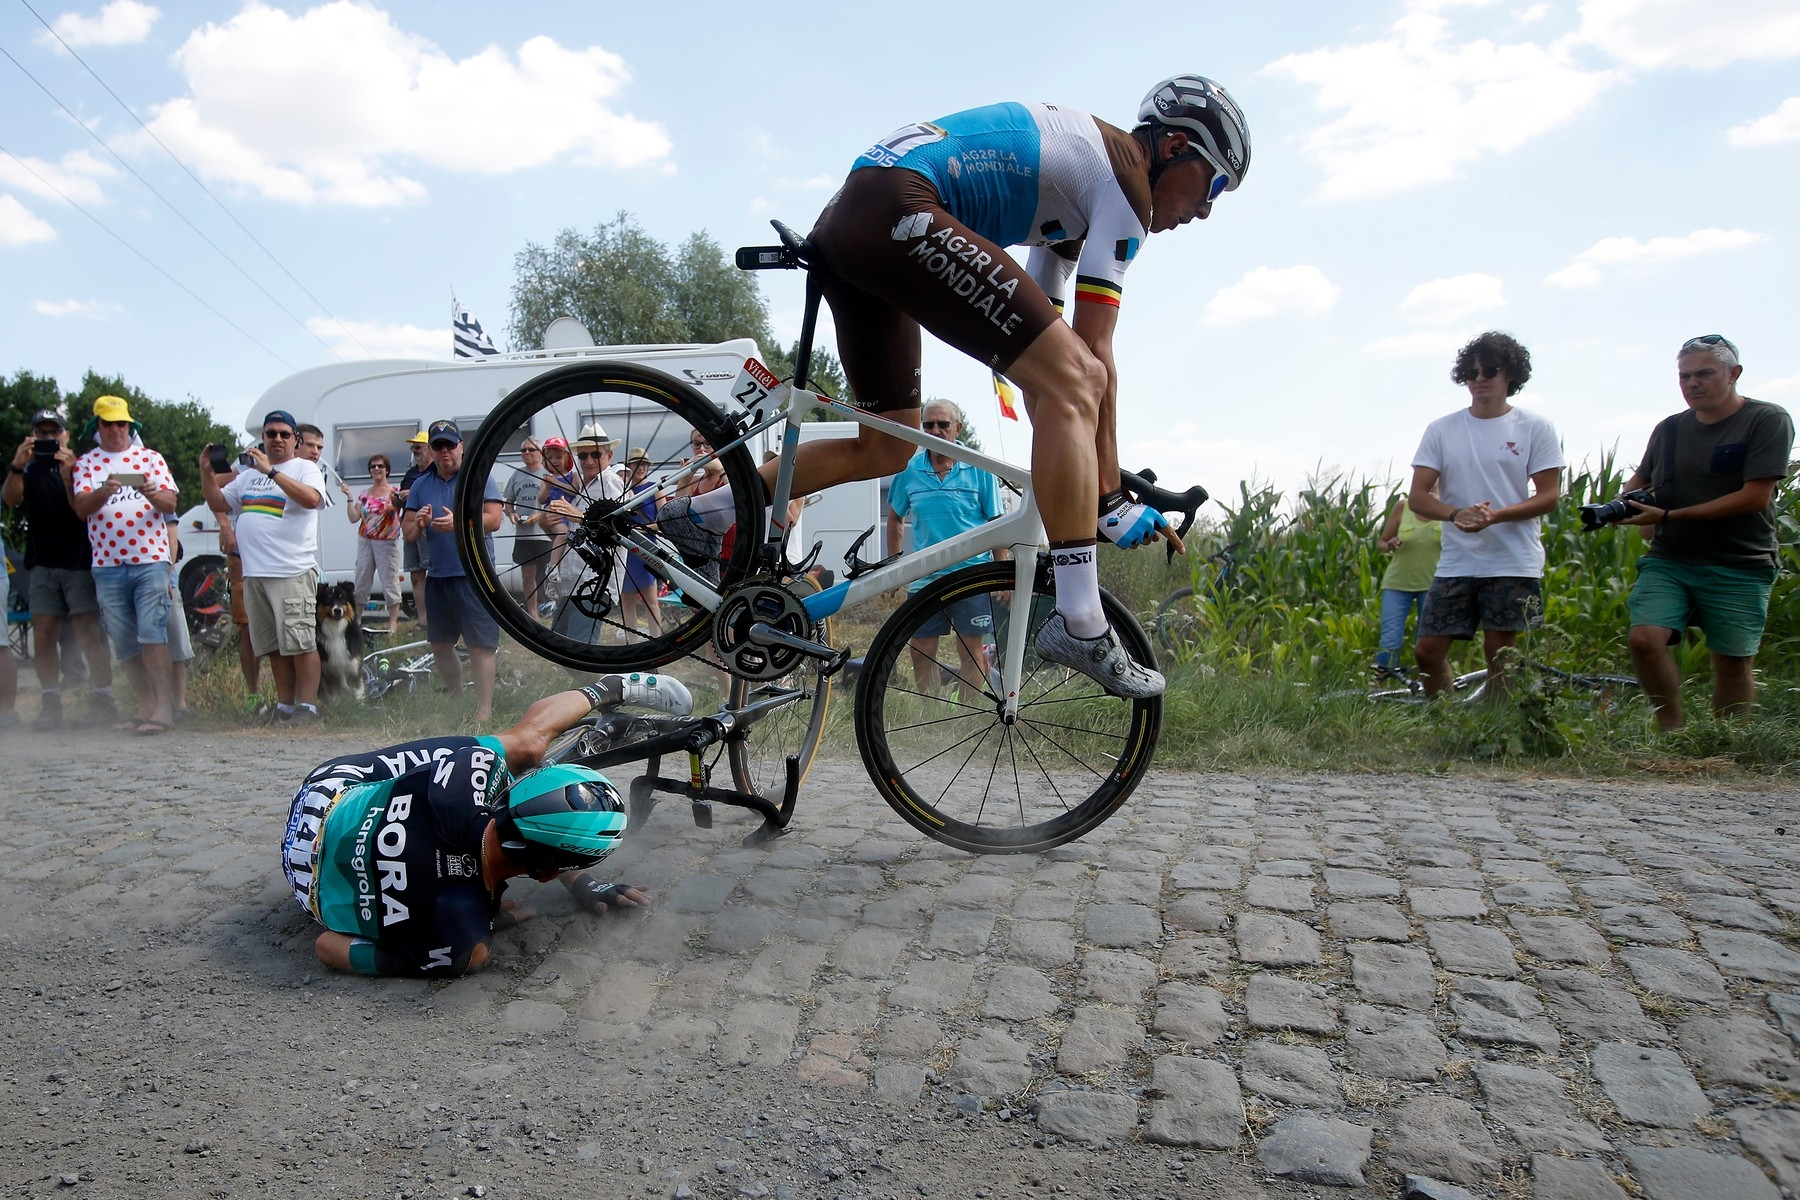 Bora Hansgrohe team rider Rafal Majka (down) of Poland and AG2R La Mondiale team rider Olivier Naesen (R) of Belgium crash during the 9th stage of the 105th edition of the Tour de France cycling race over 156,5km between Arras and Roubaix, France, 15 July 2018